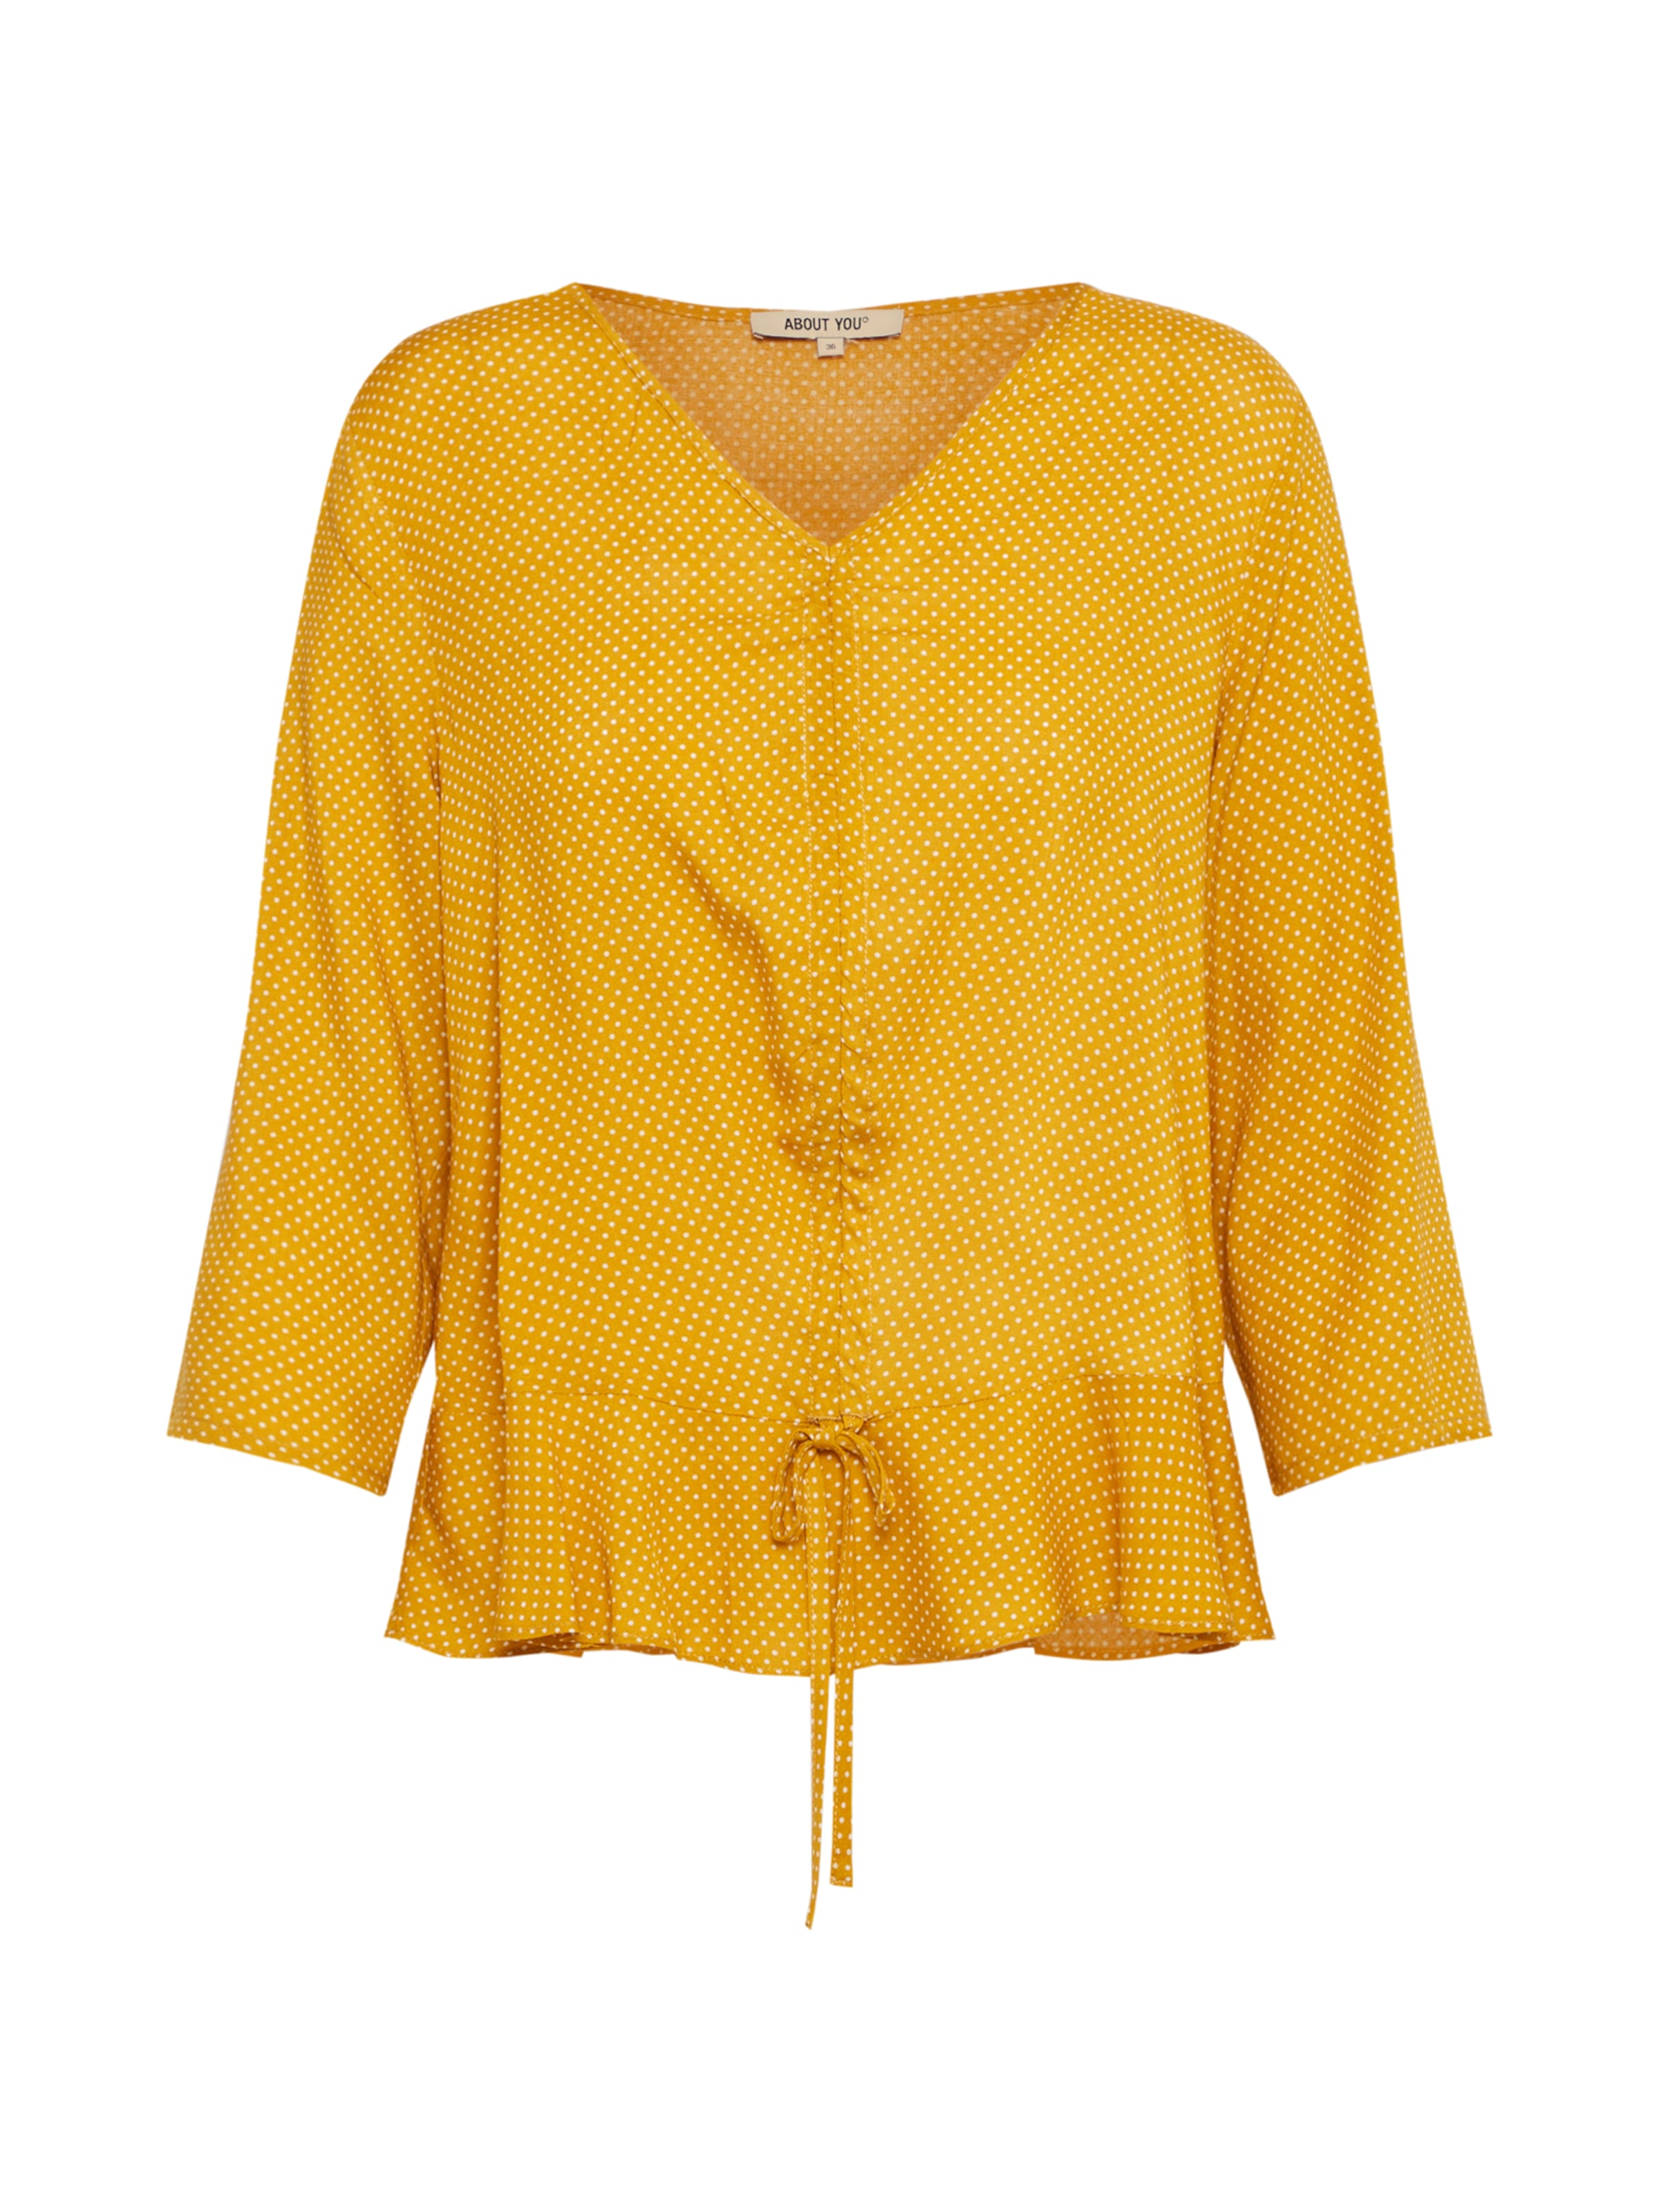 You Mosterd About In 'hailey' Blouse HIWED29